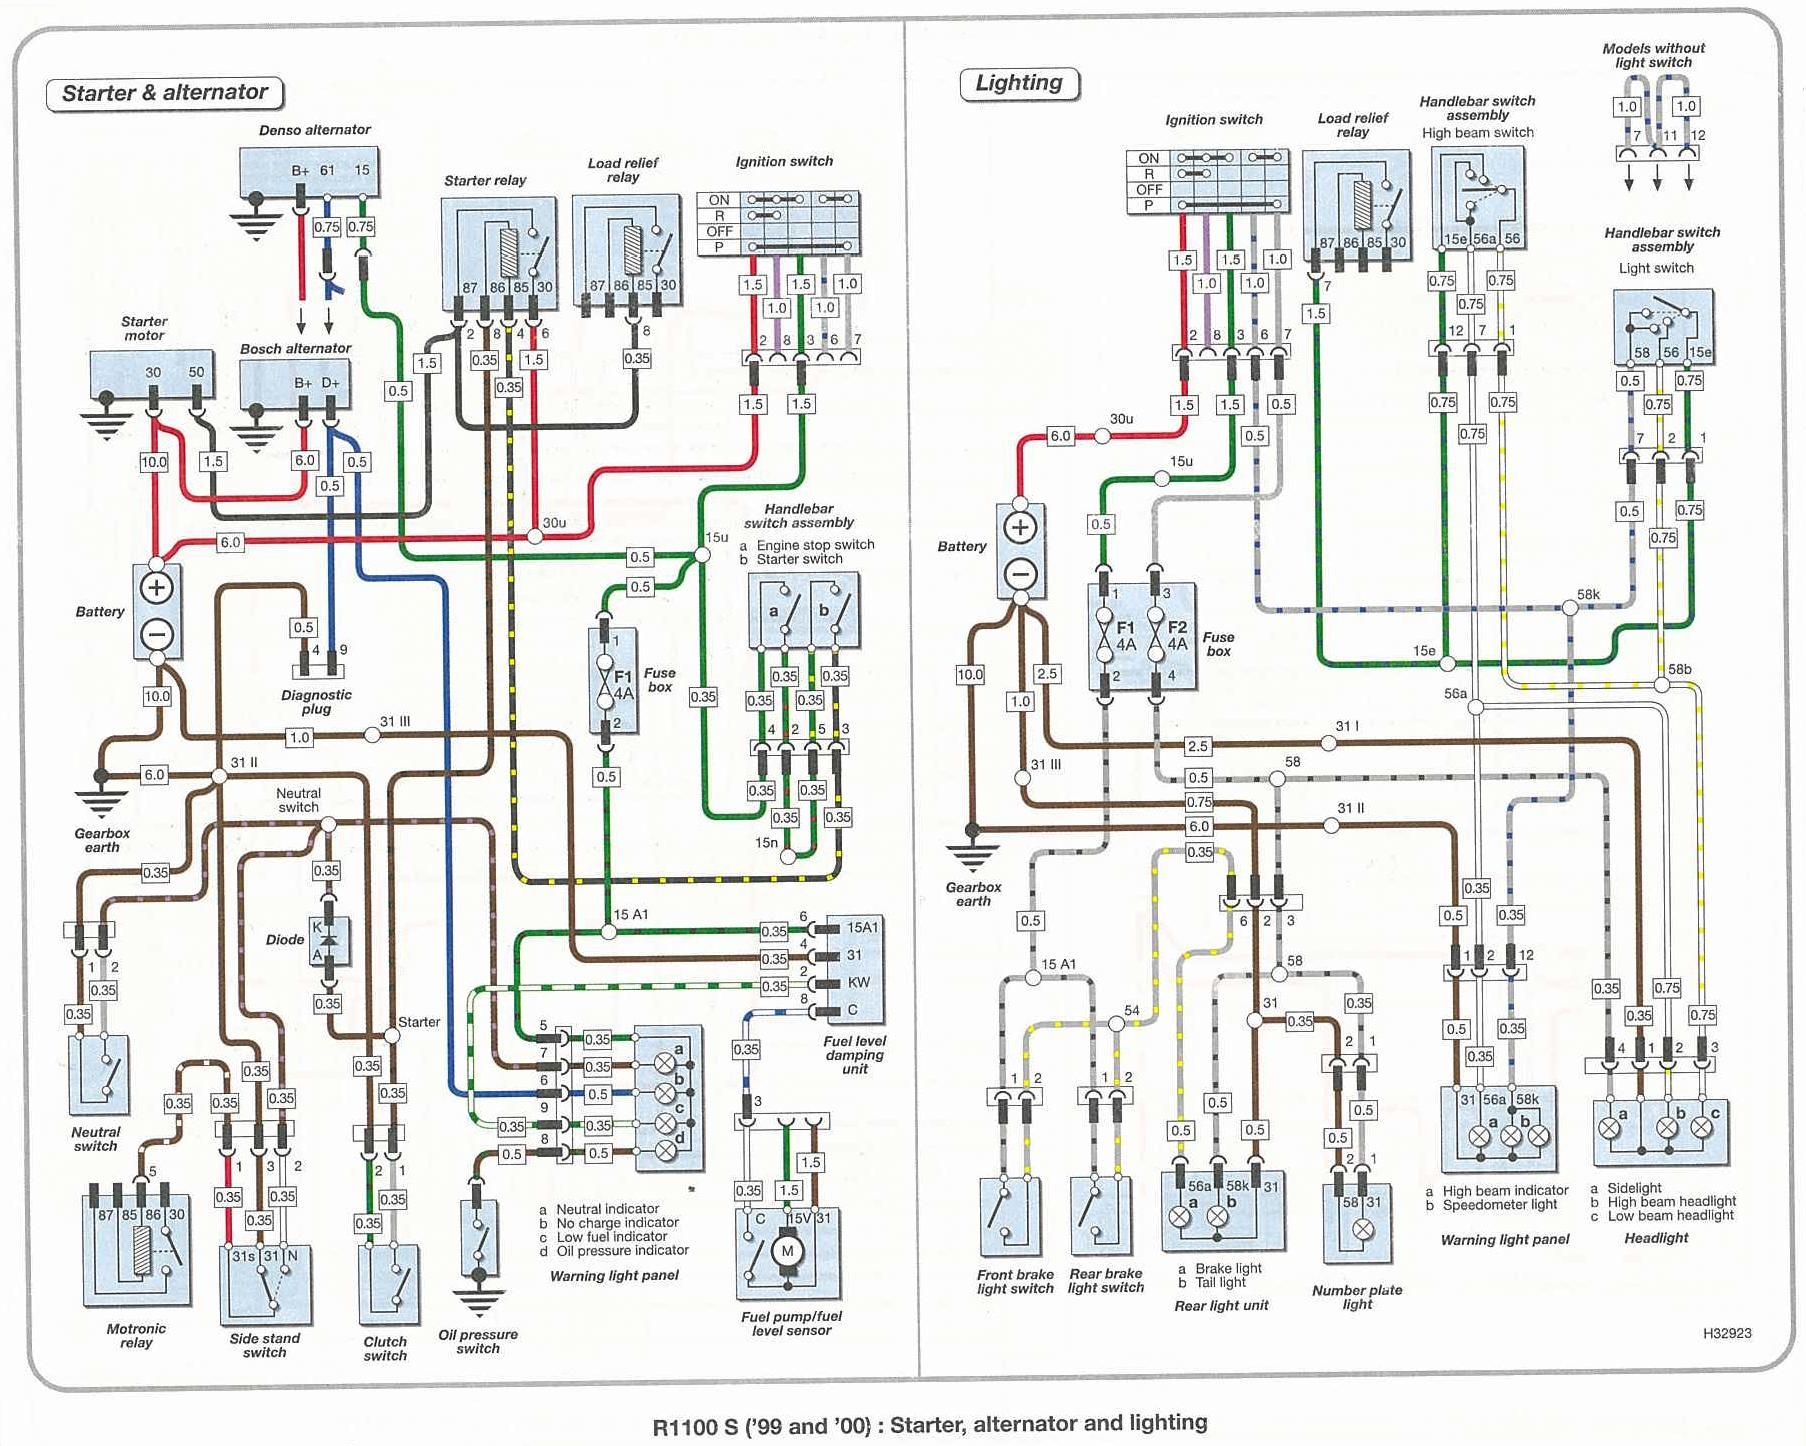 wiring02 bmw r1100s wiring diagrams on r1100r wiring diagram pdf